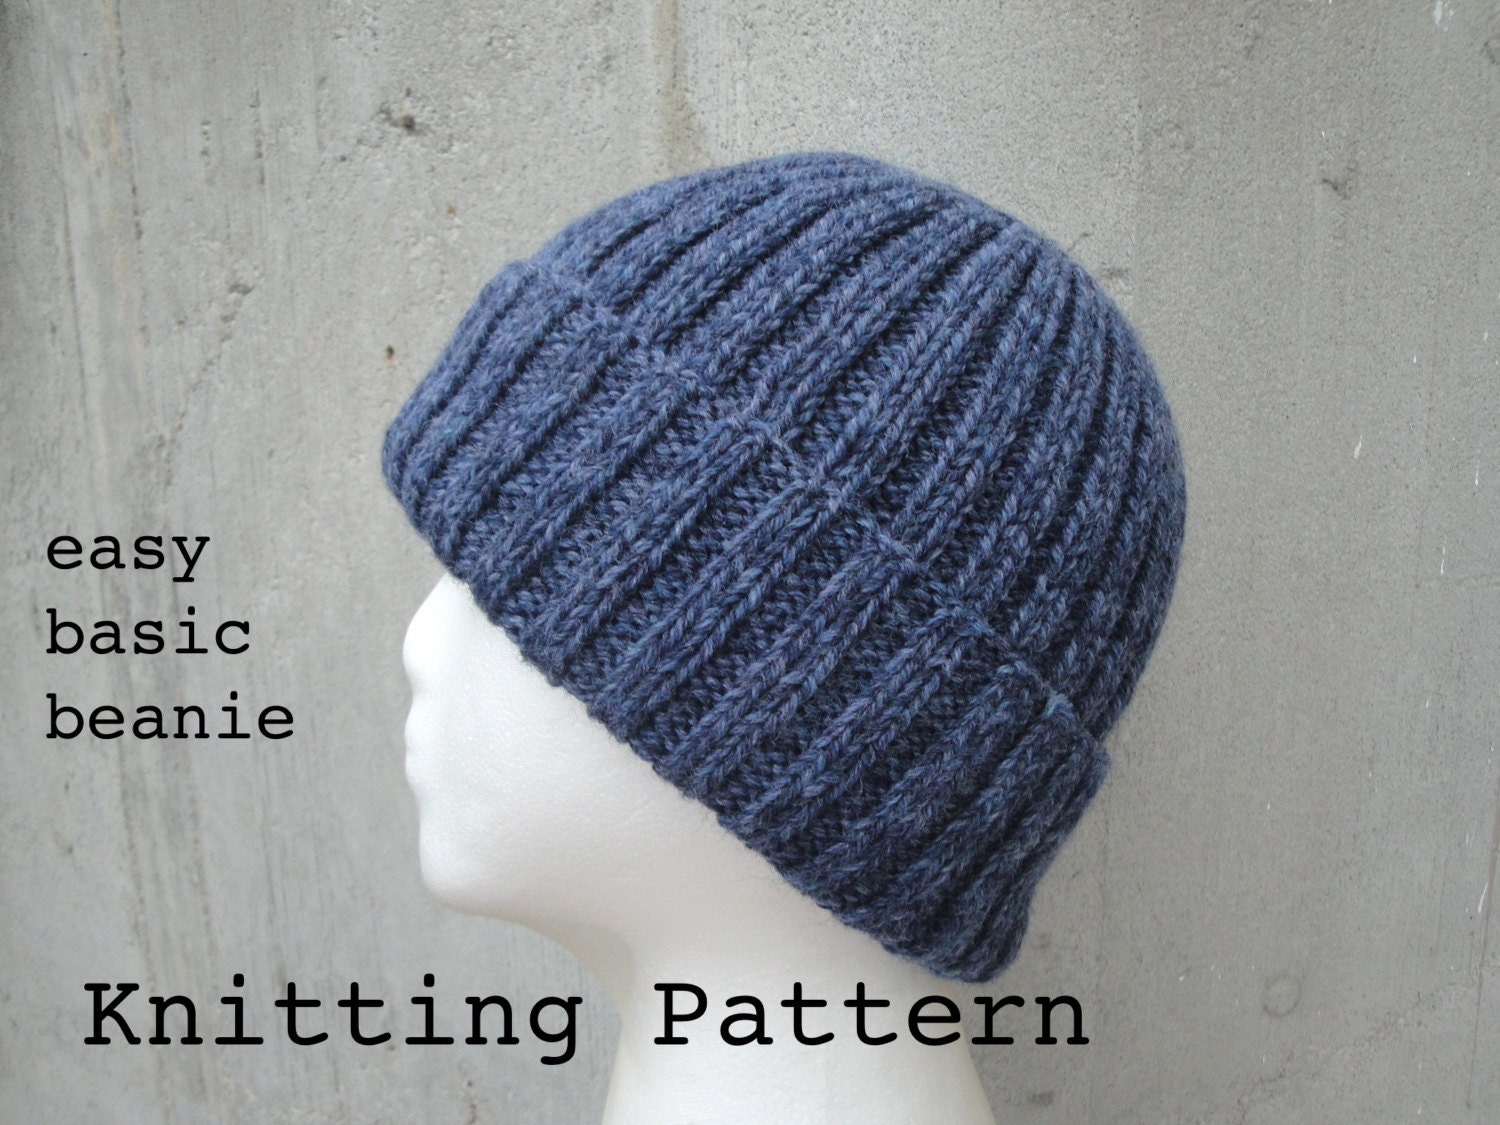 Pattern For Infinity Scarf Knit : Girlpowers Basic Beanie PDF Knitting Pattern Easy by Girlpower